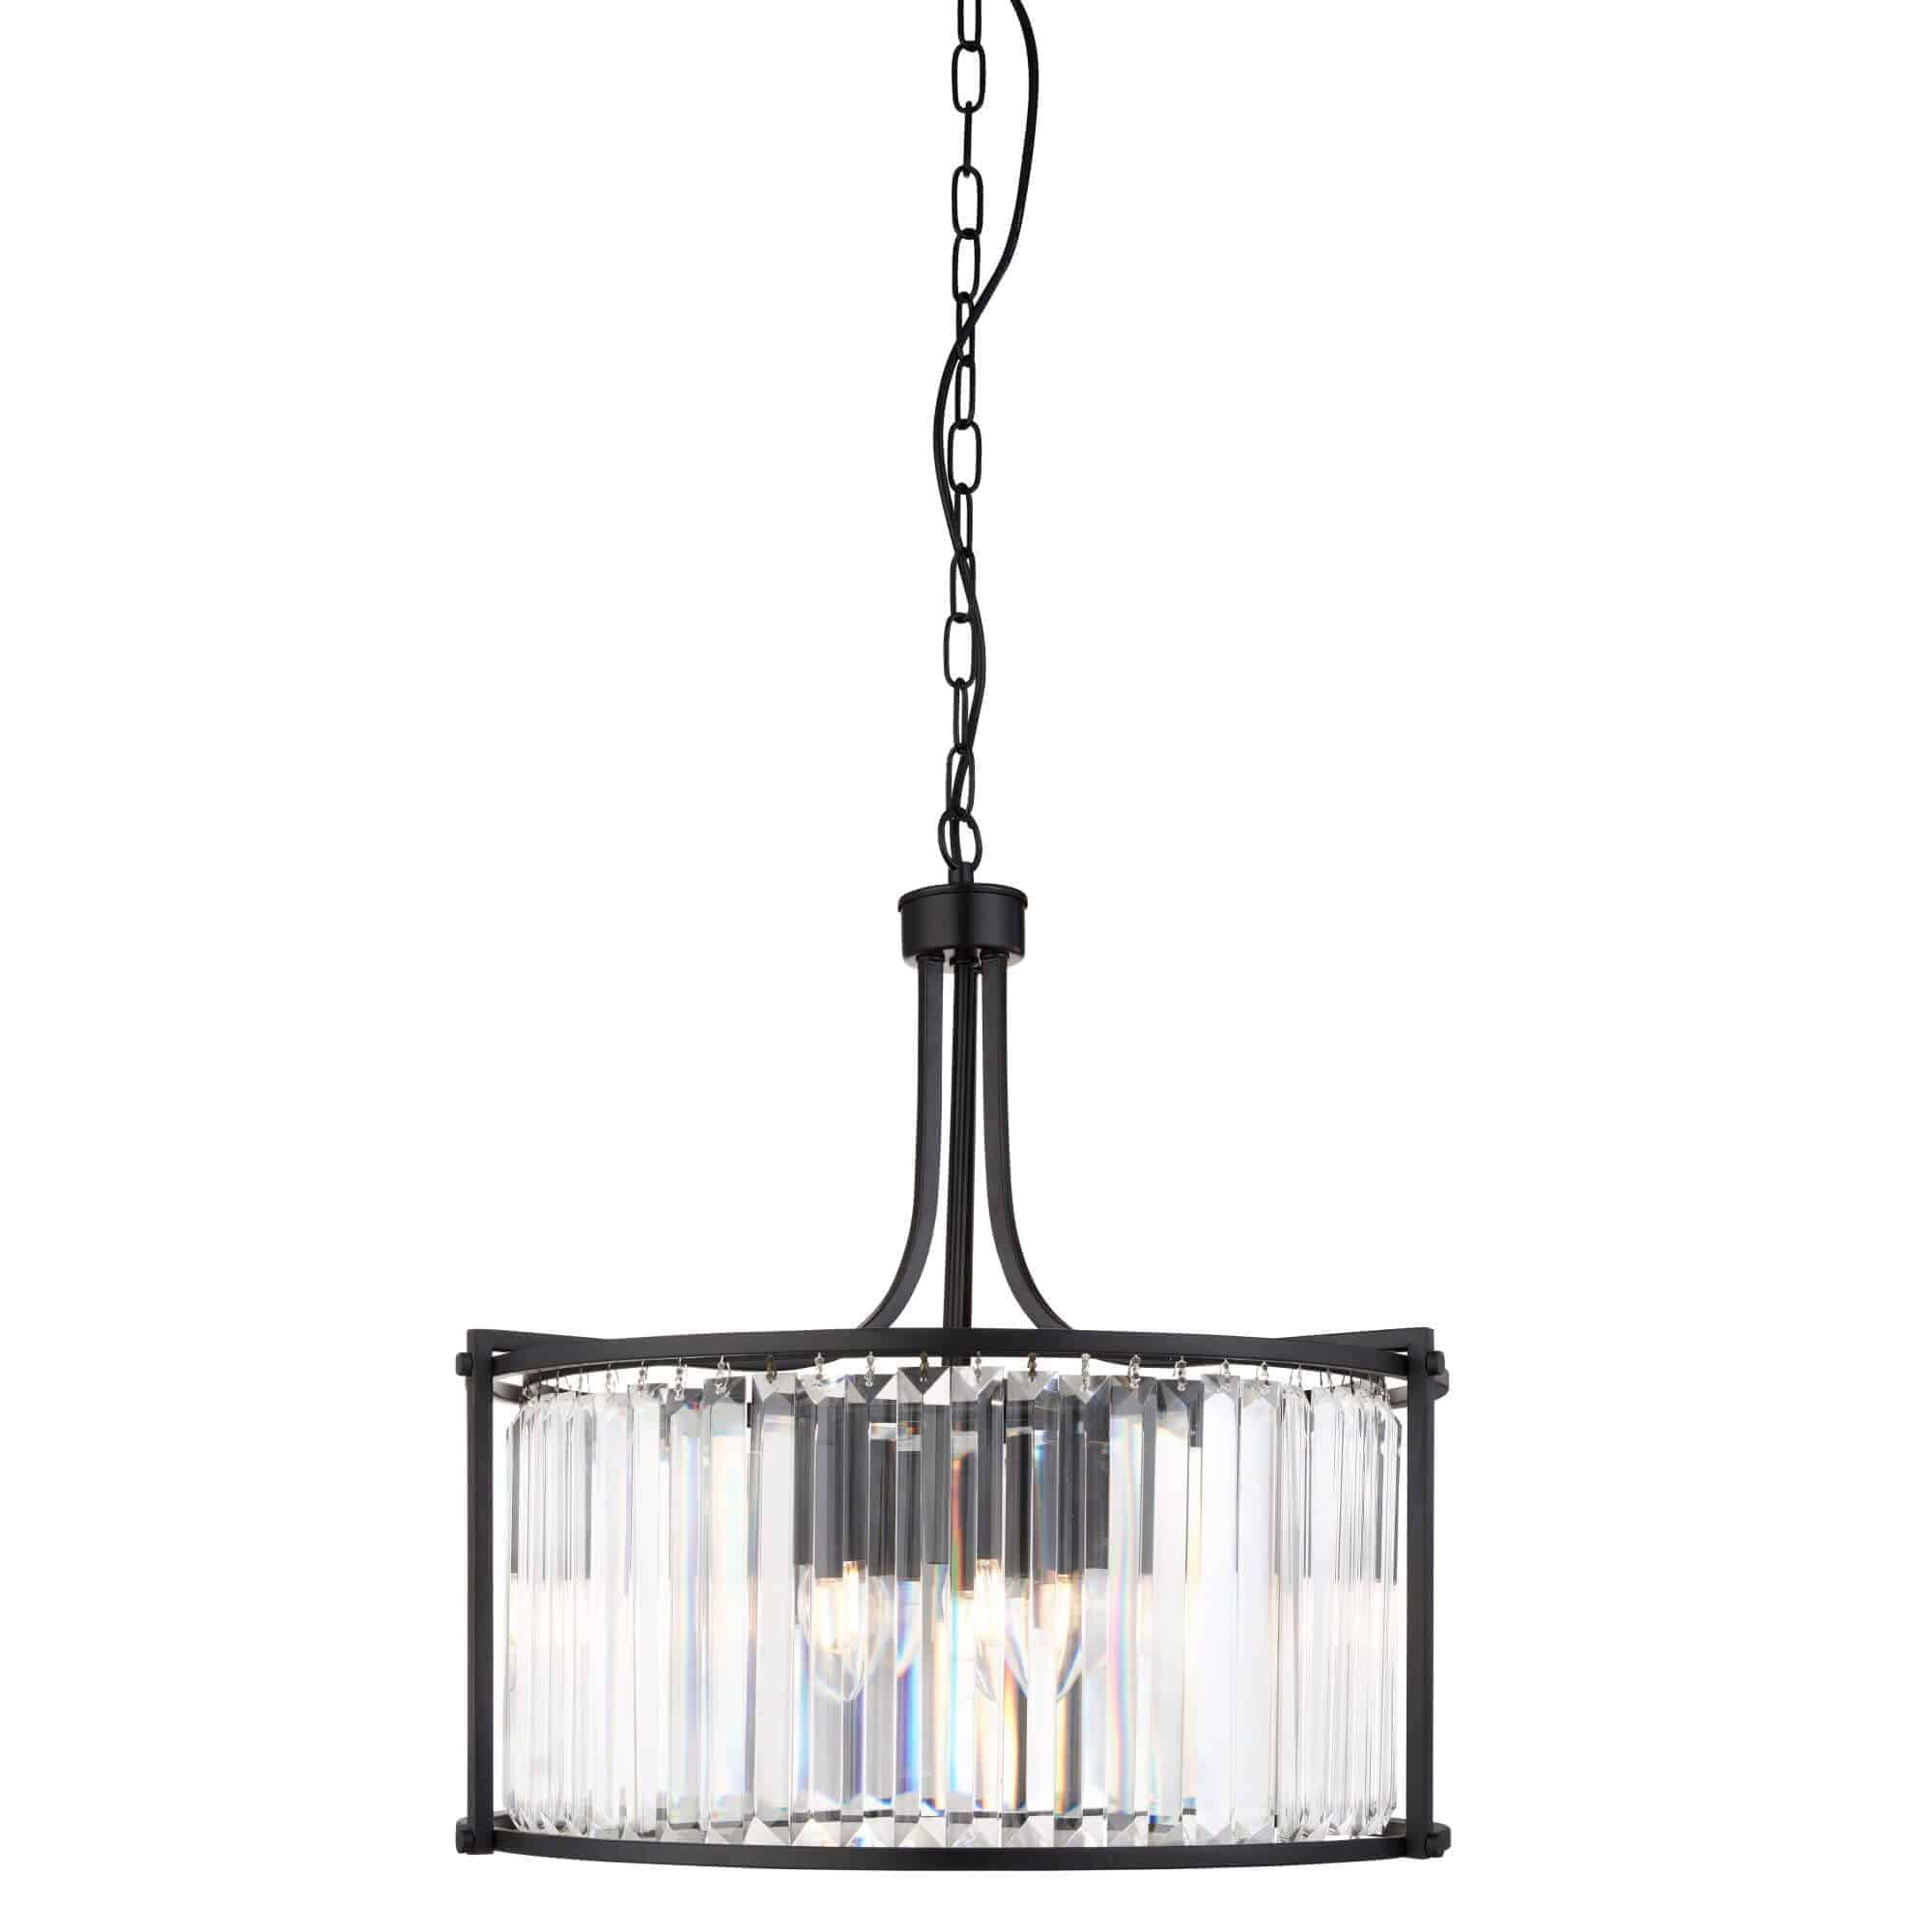 8295-5BK – Searchlight Victoria Matt Black 5 Light Drum Pendant